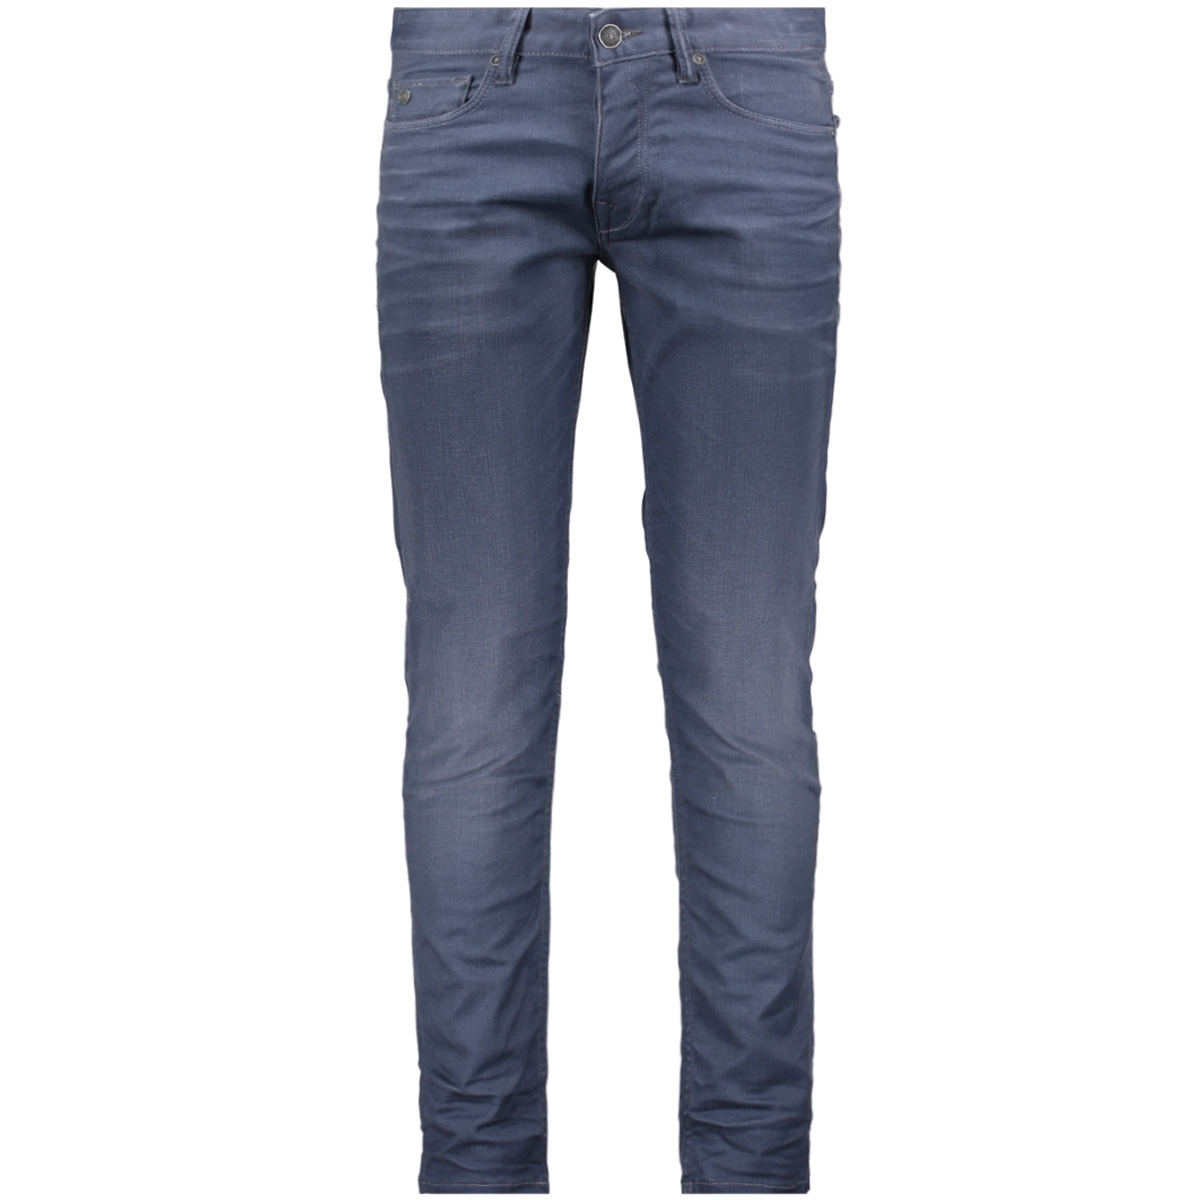 cope tapered ctr350 cast iron jeans goc